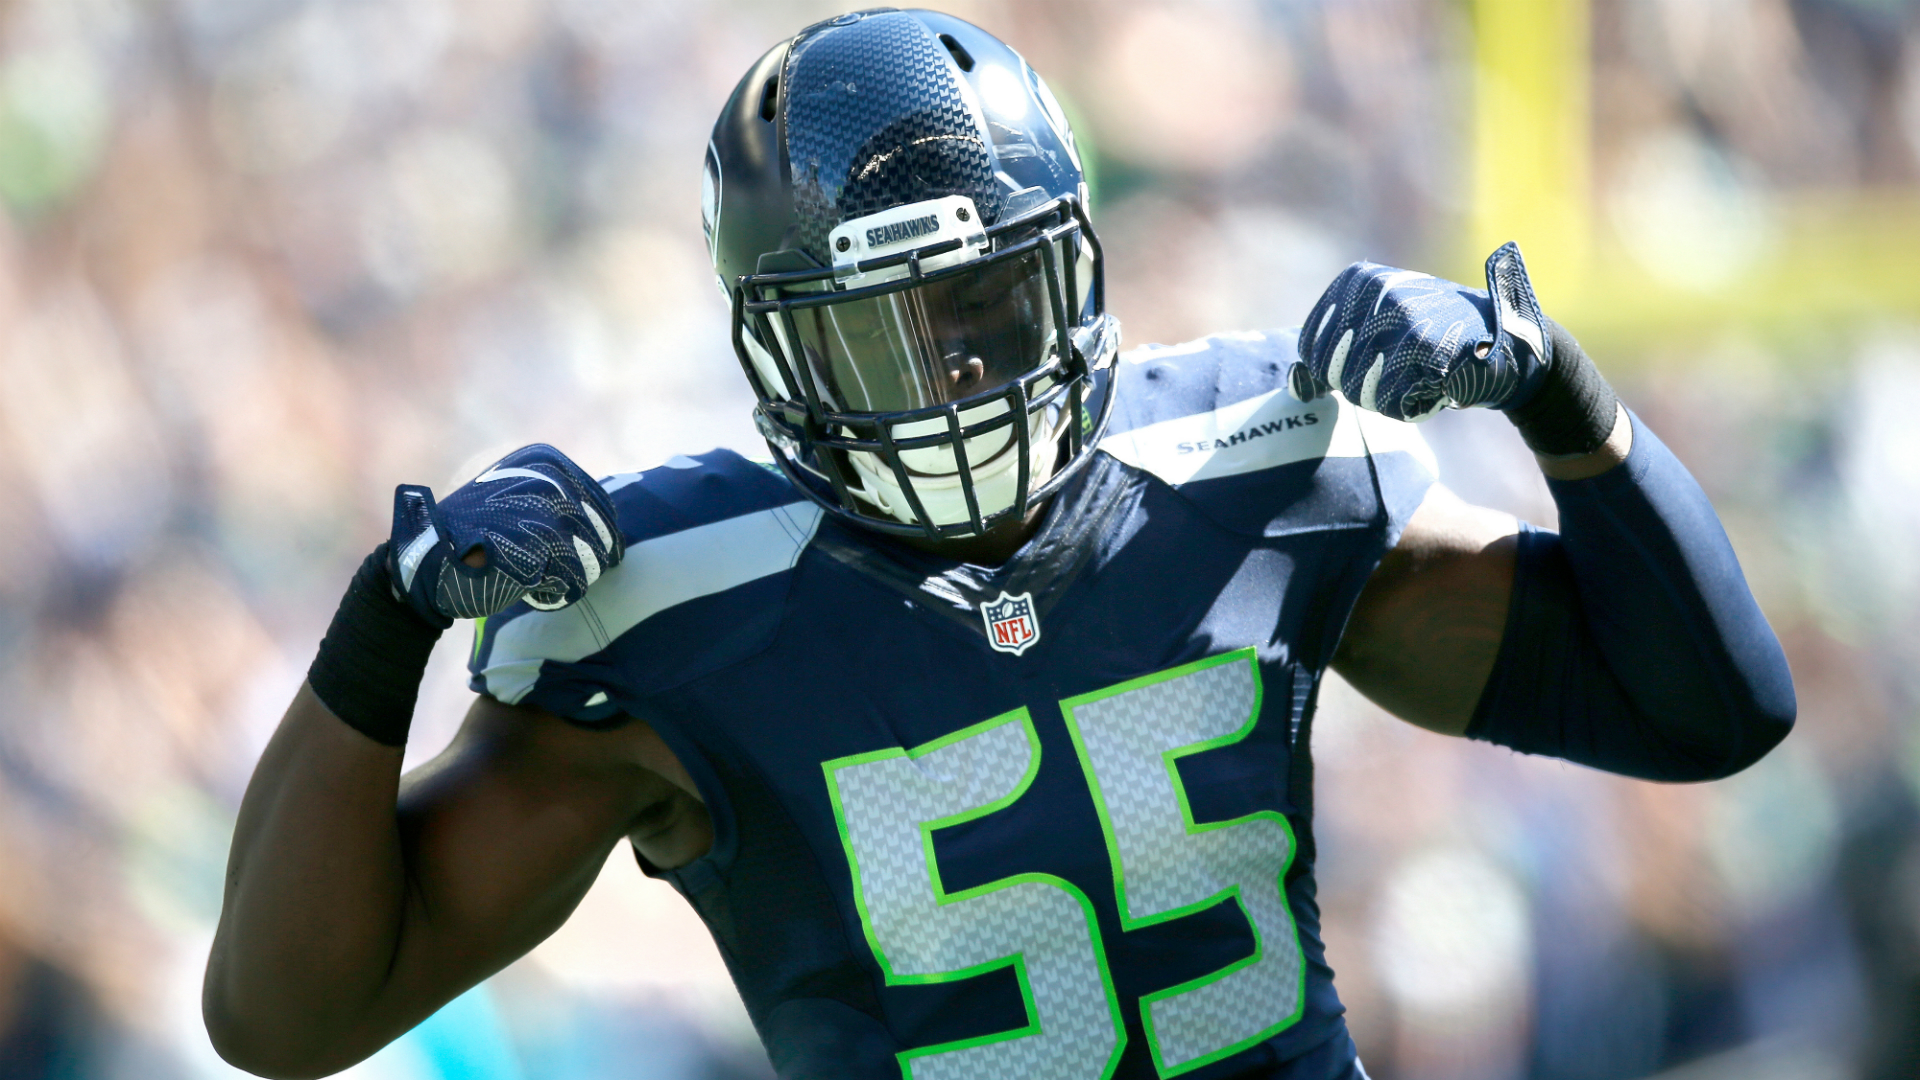 Seahawks Frank Clark insults reporter over domestic violence